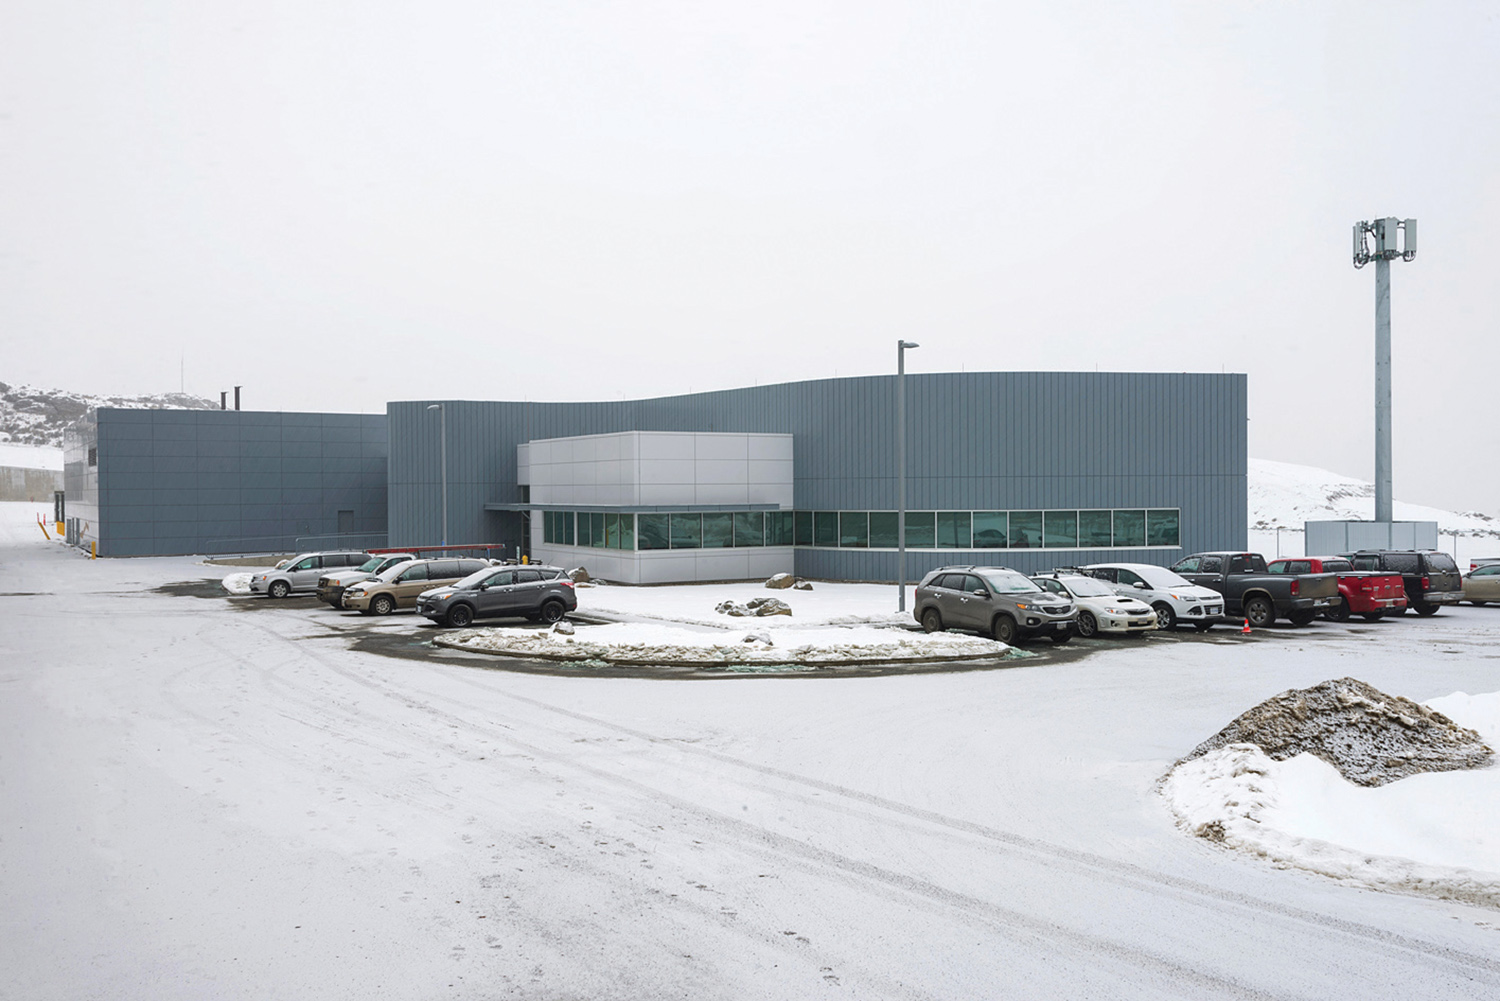 Figure 1. Exterior photo of the Kamloops SIDC